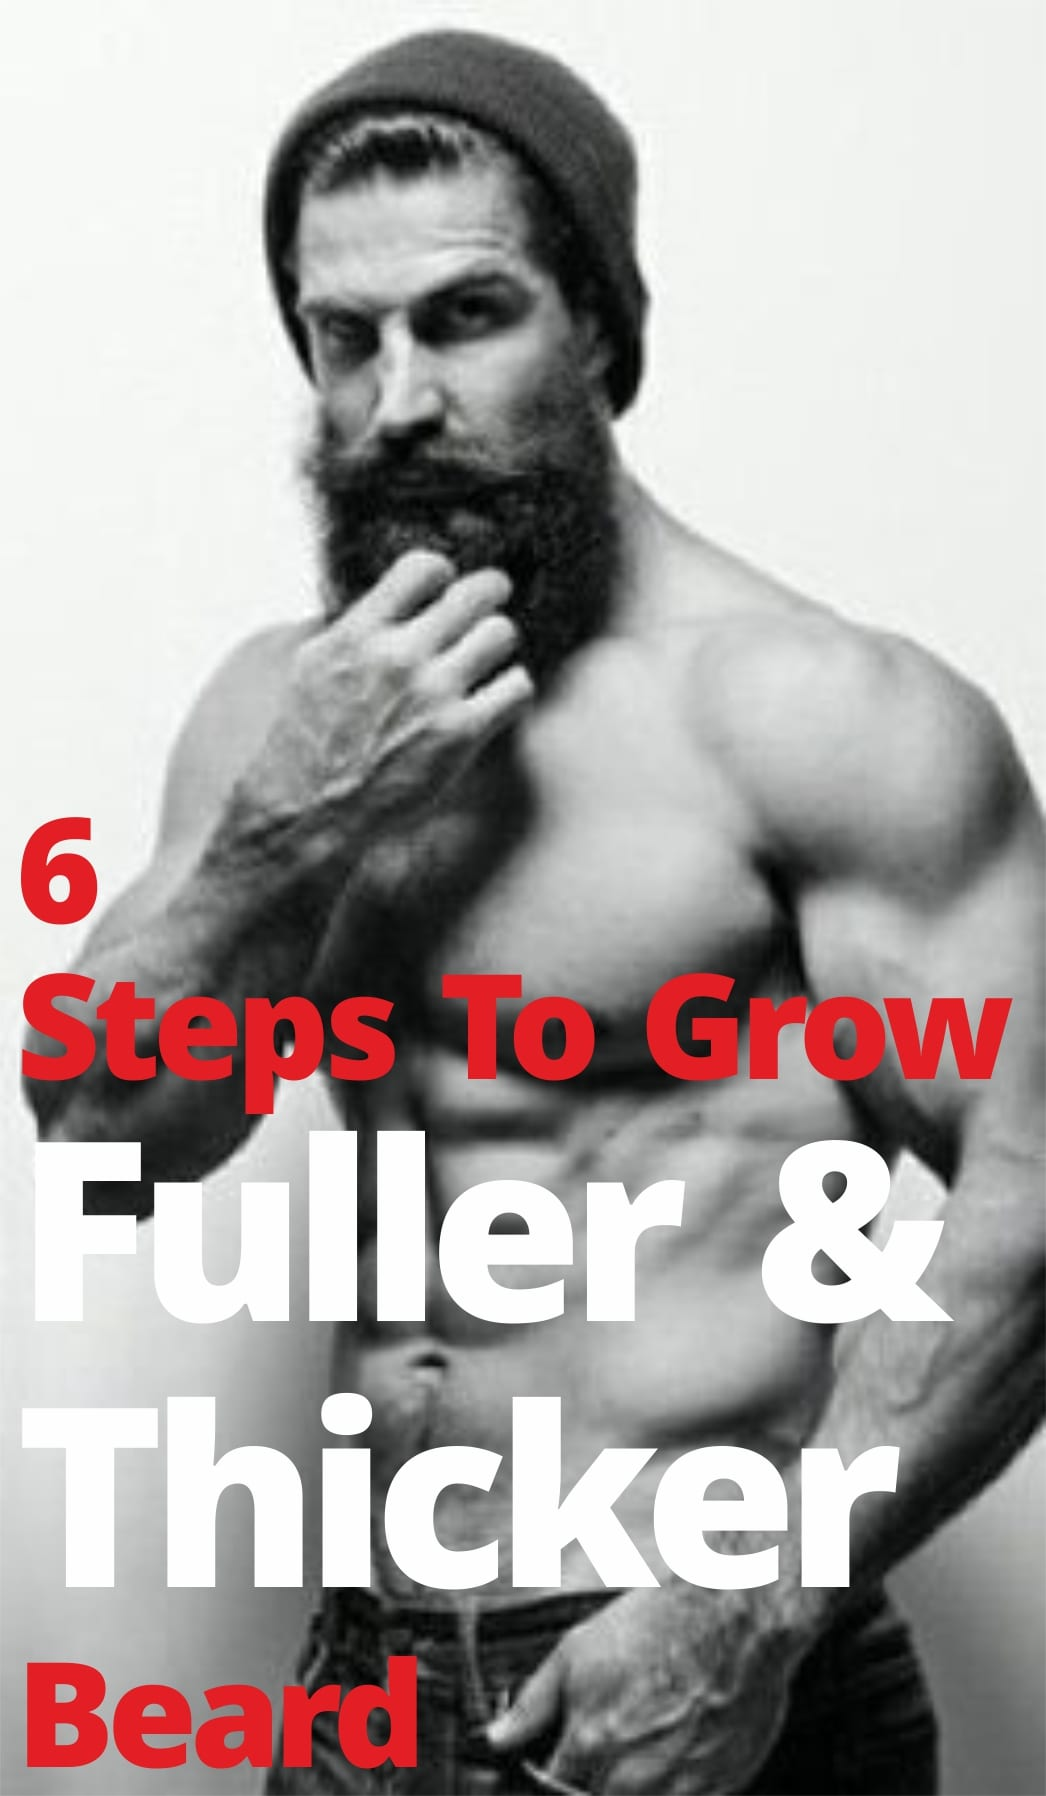 6 Easy Steps To Grow Fuller Beard